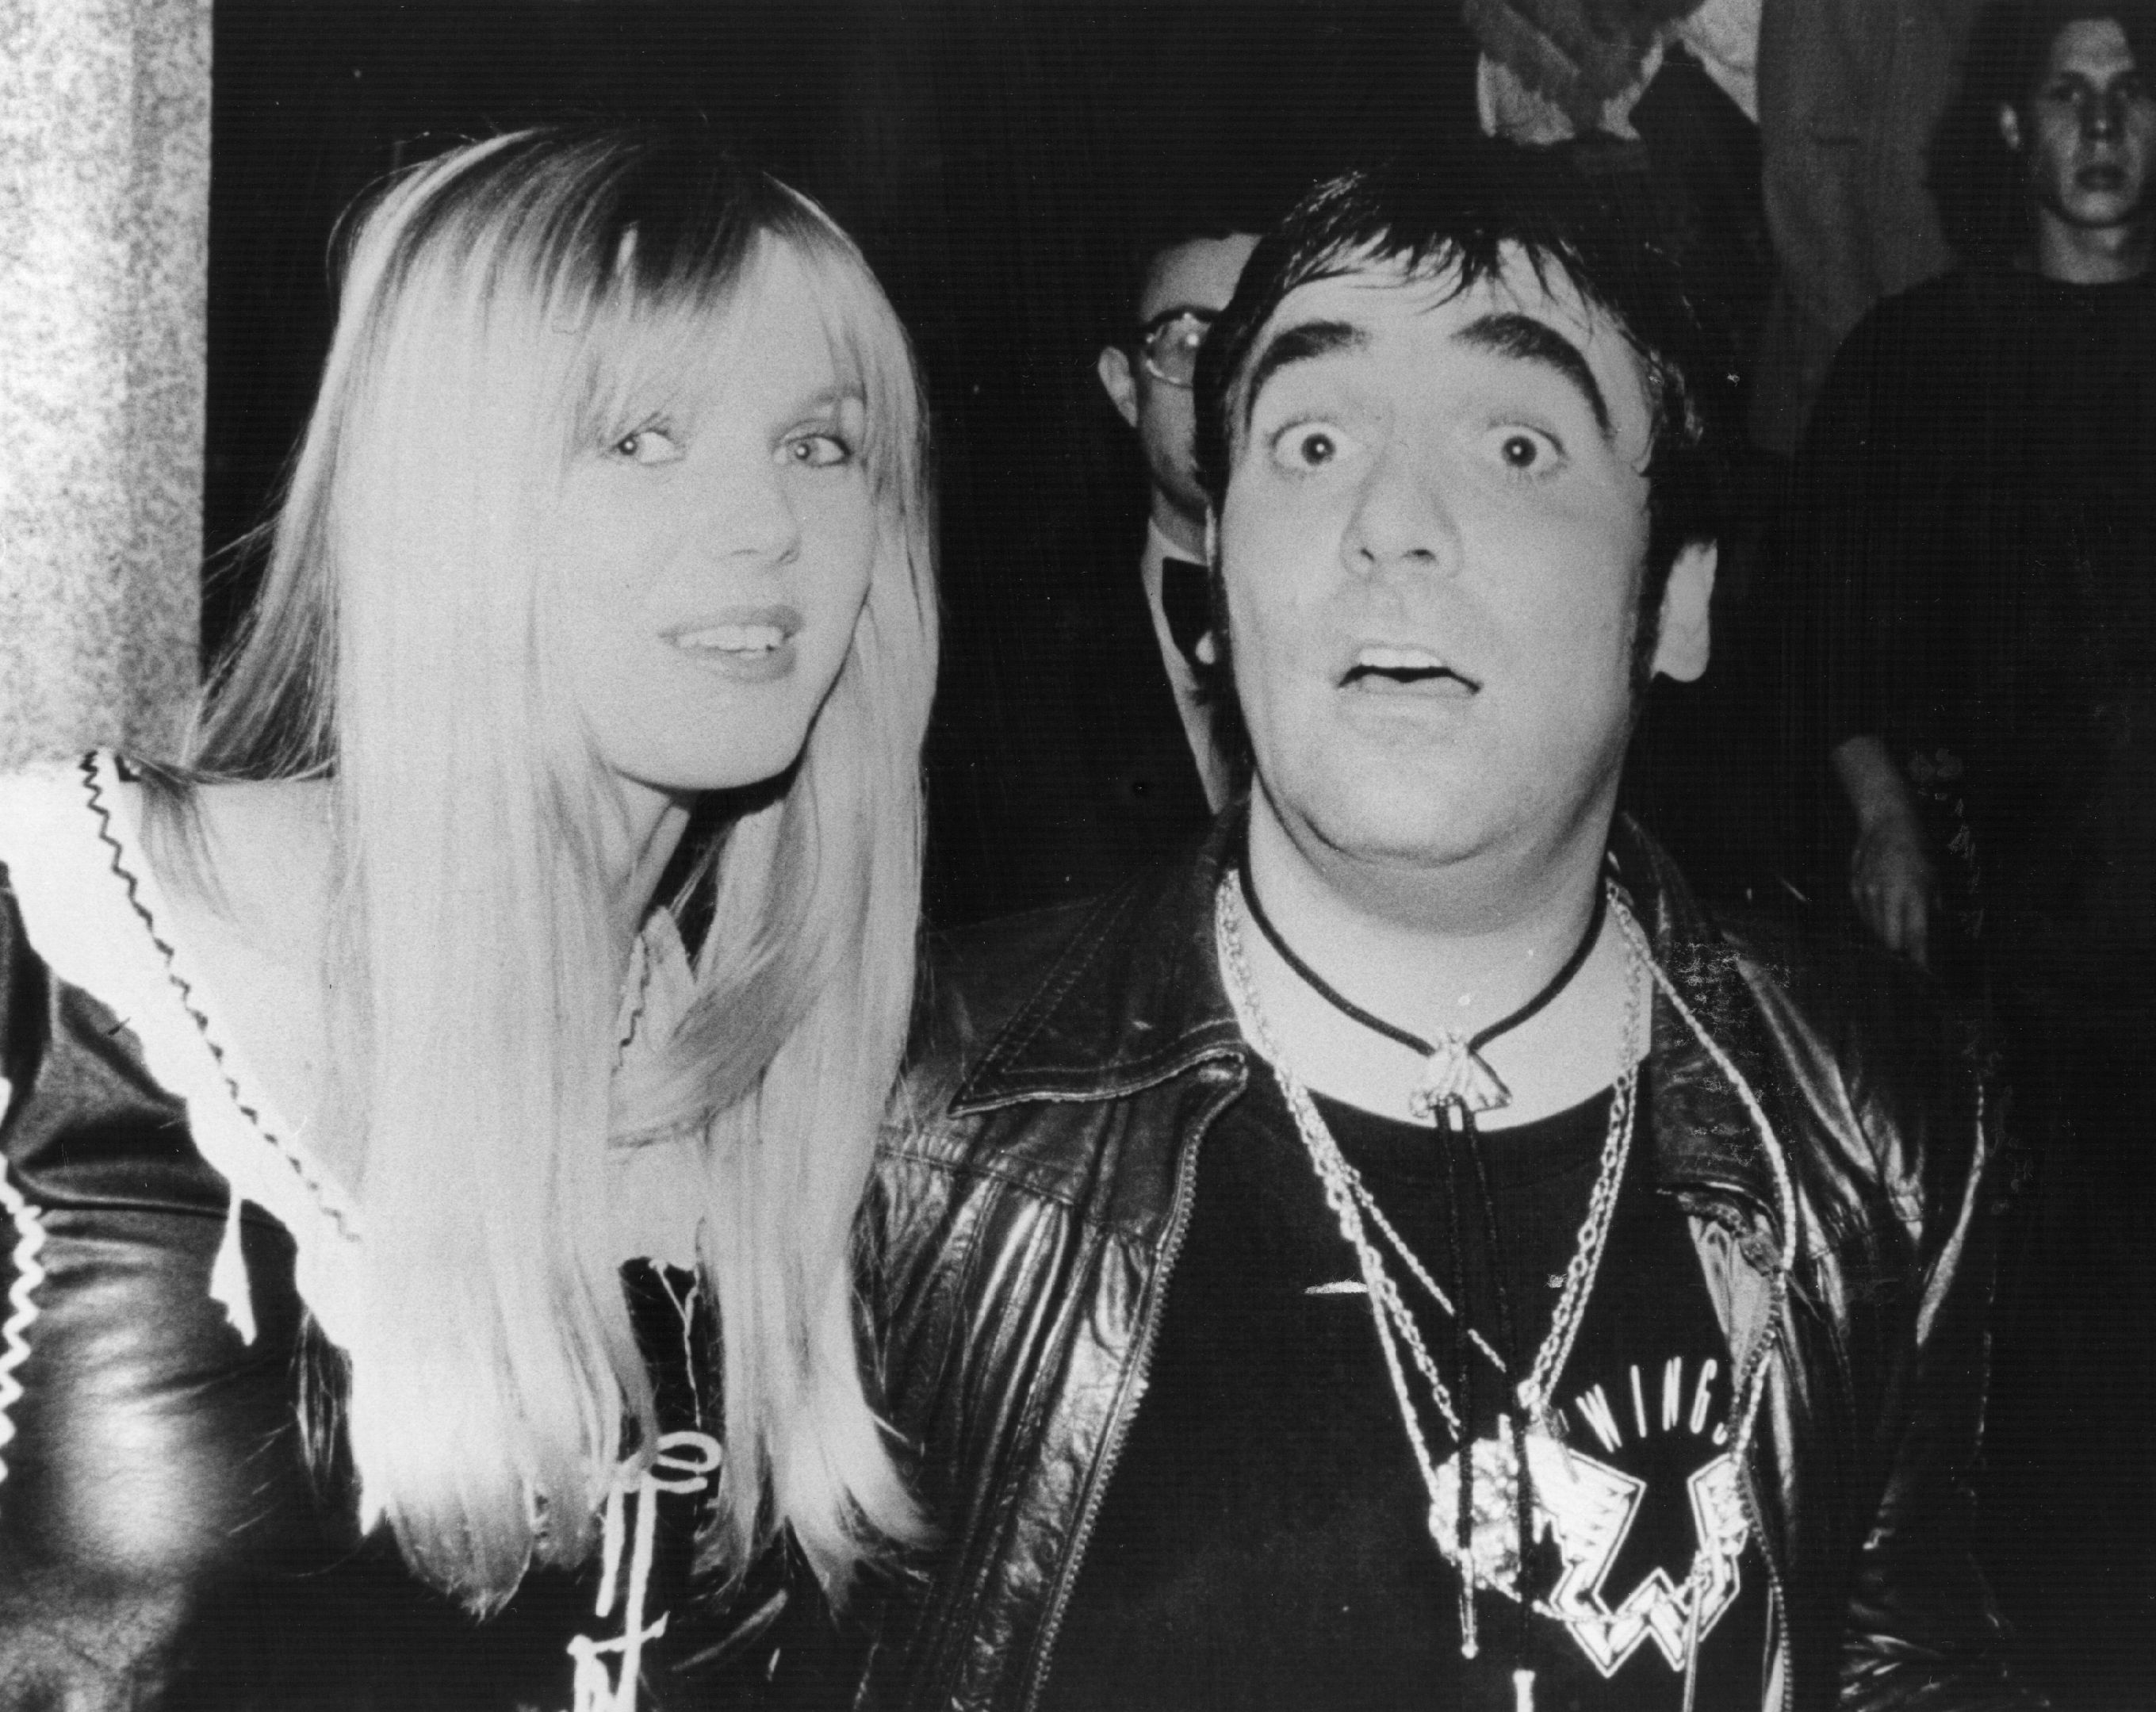 6th September 1978: Notorious wild man of rock Keith Moon (1947 - 1978), drummer of British group The Who, with his girlfriend Annette Walter-Lax at the film premiere of 'The Buddy Holly Story' in London, on what would sadly be his last night out. (Photo by Gary Merrin/Keystone/Getty Images)